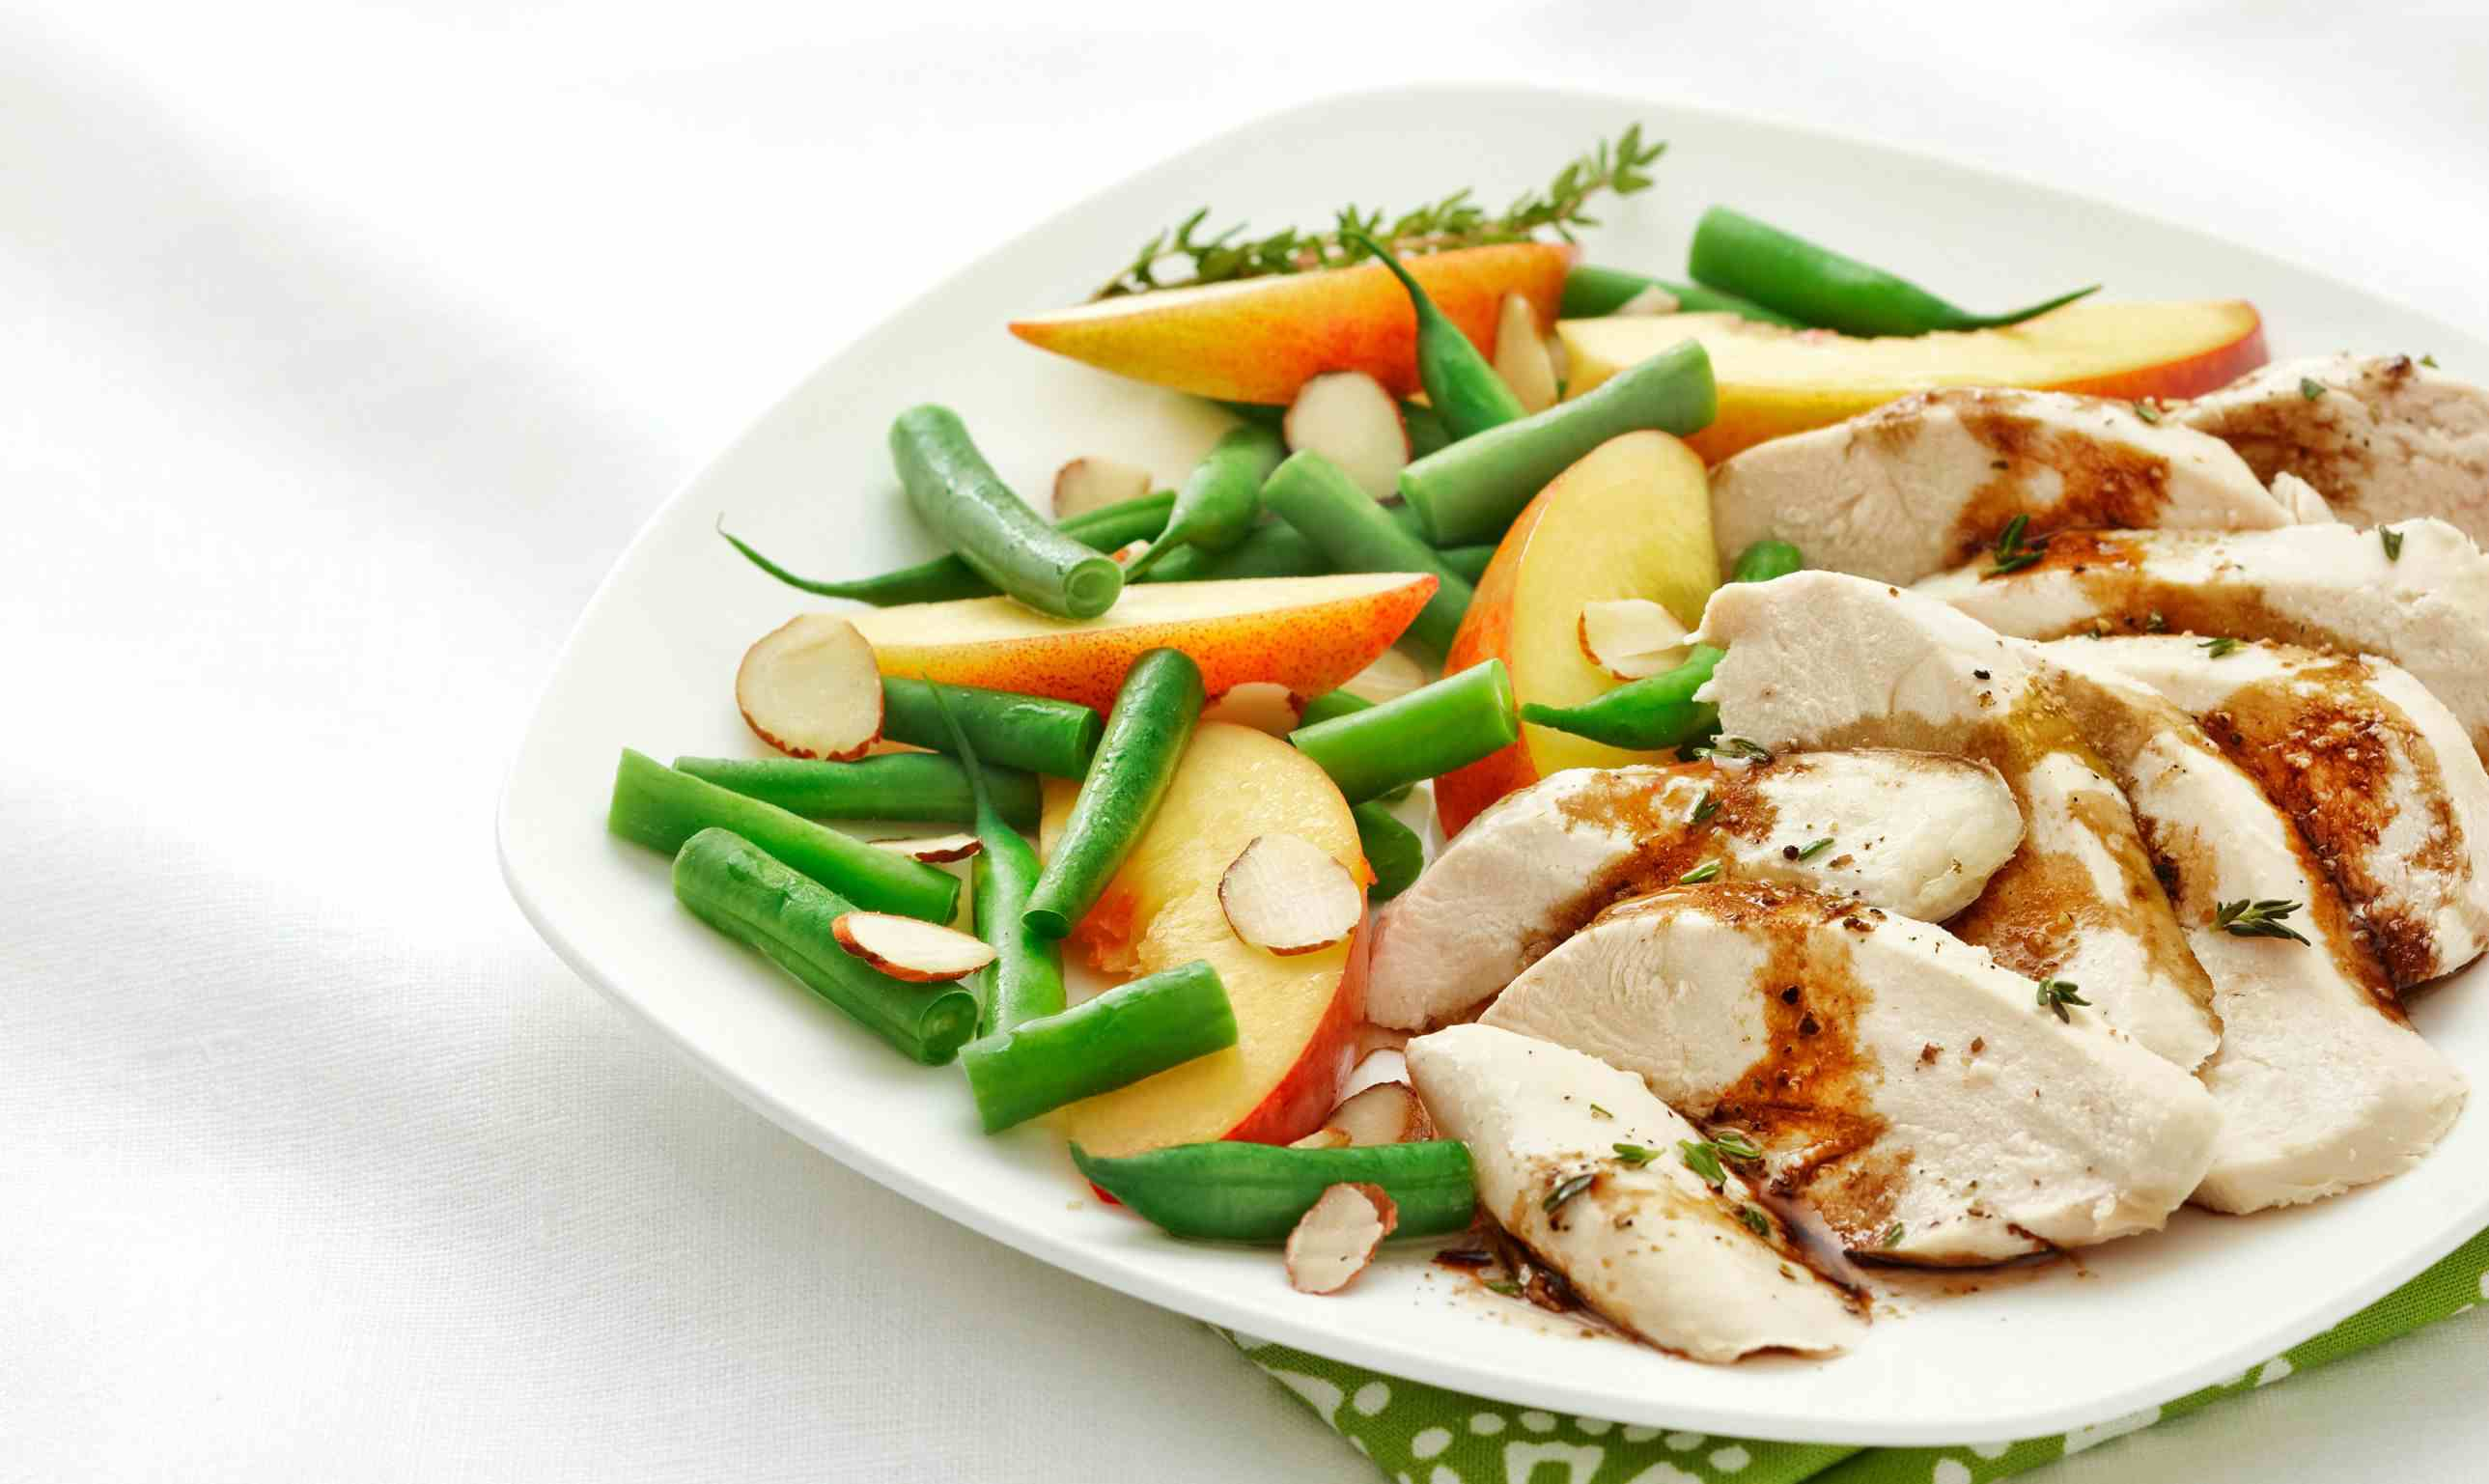 Healthy Dinner Recipes And Tips For Weight Loss